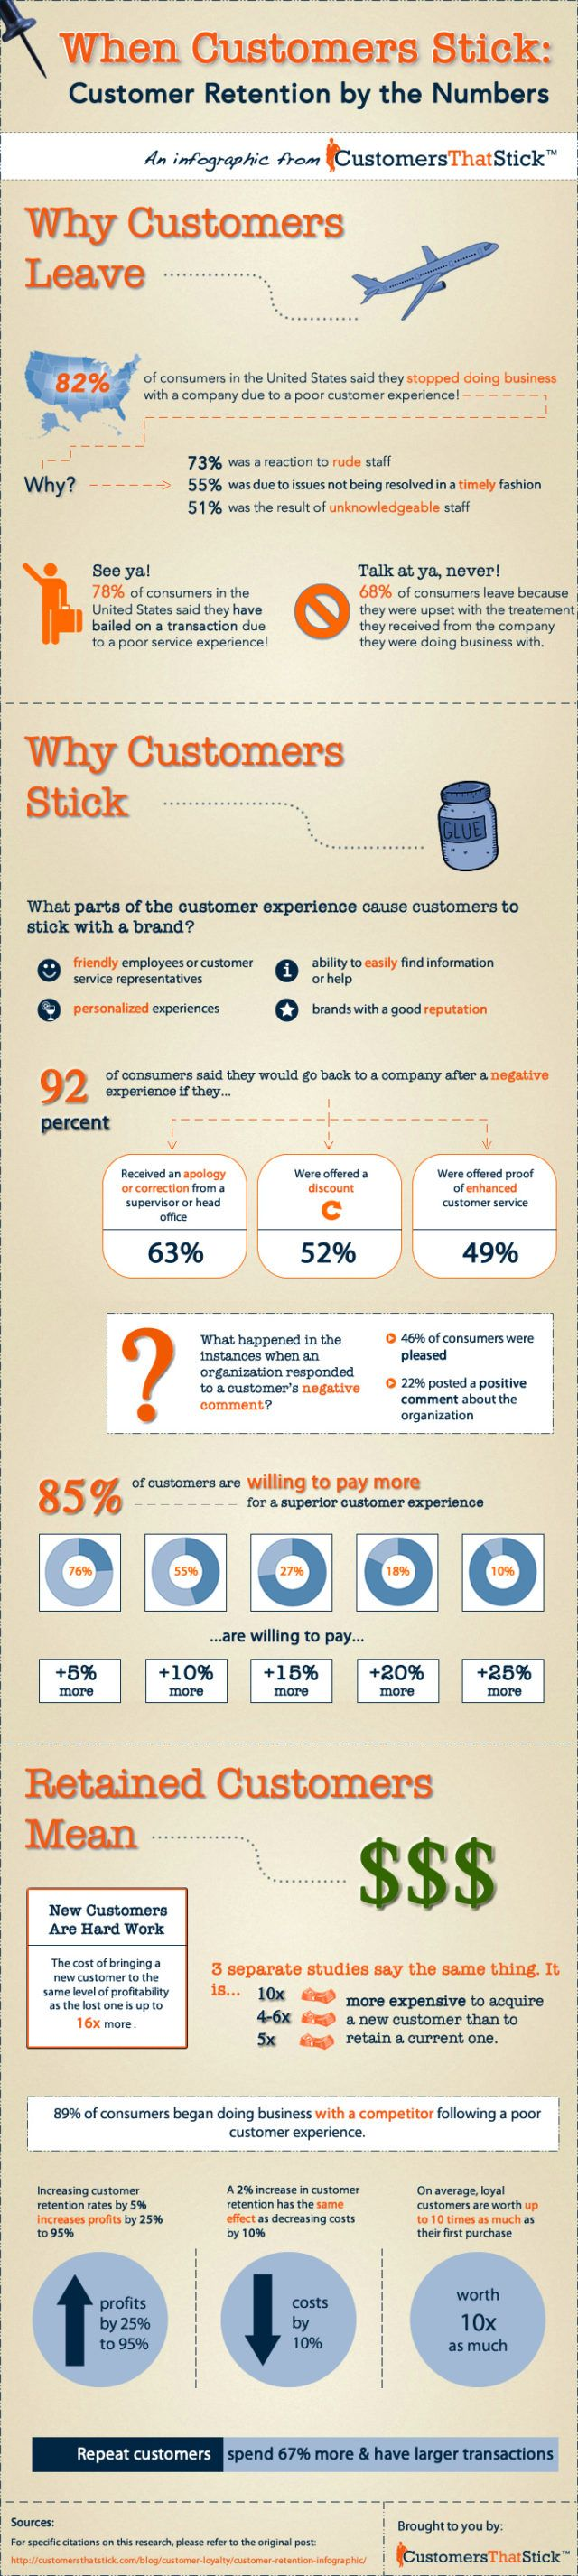 infographic-customer-retention